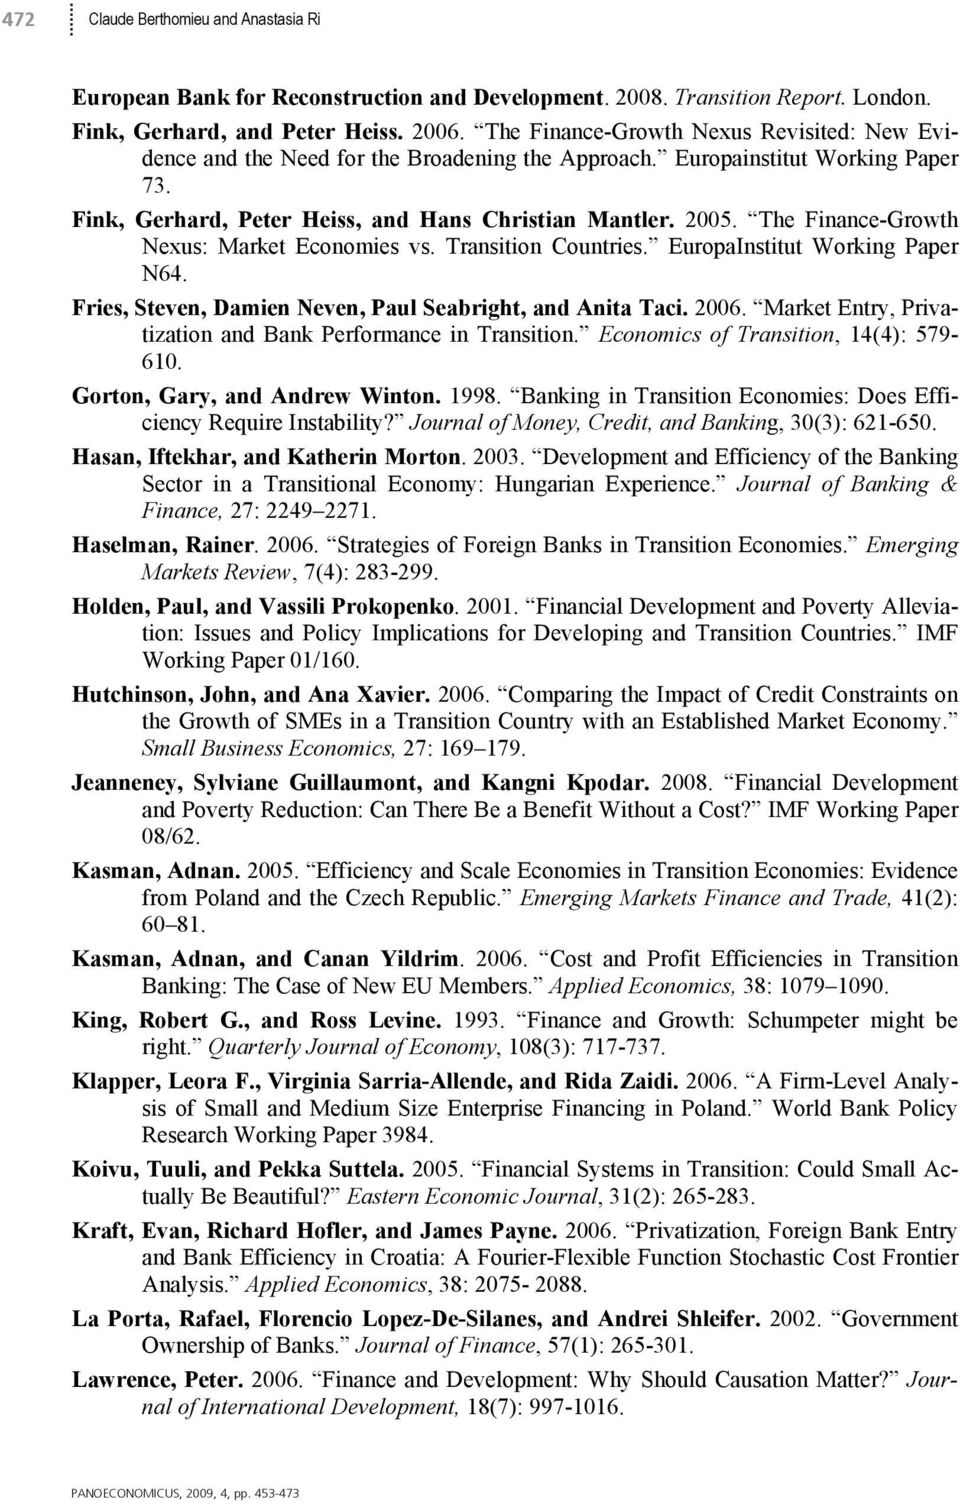 The Finance-Growth Nexus: Market Economies vs. Transition Countries. EuropaInstitut Working Paper N64. Fries, Steven, Damien Neven, Paul Seabright, and Anita Taci. 2006.